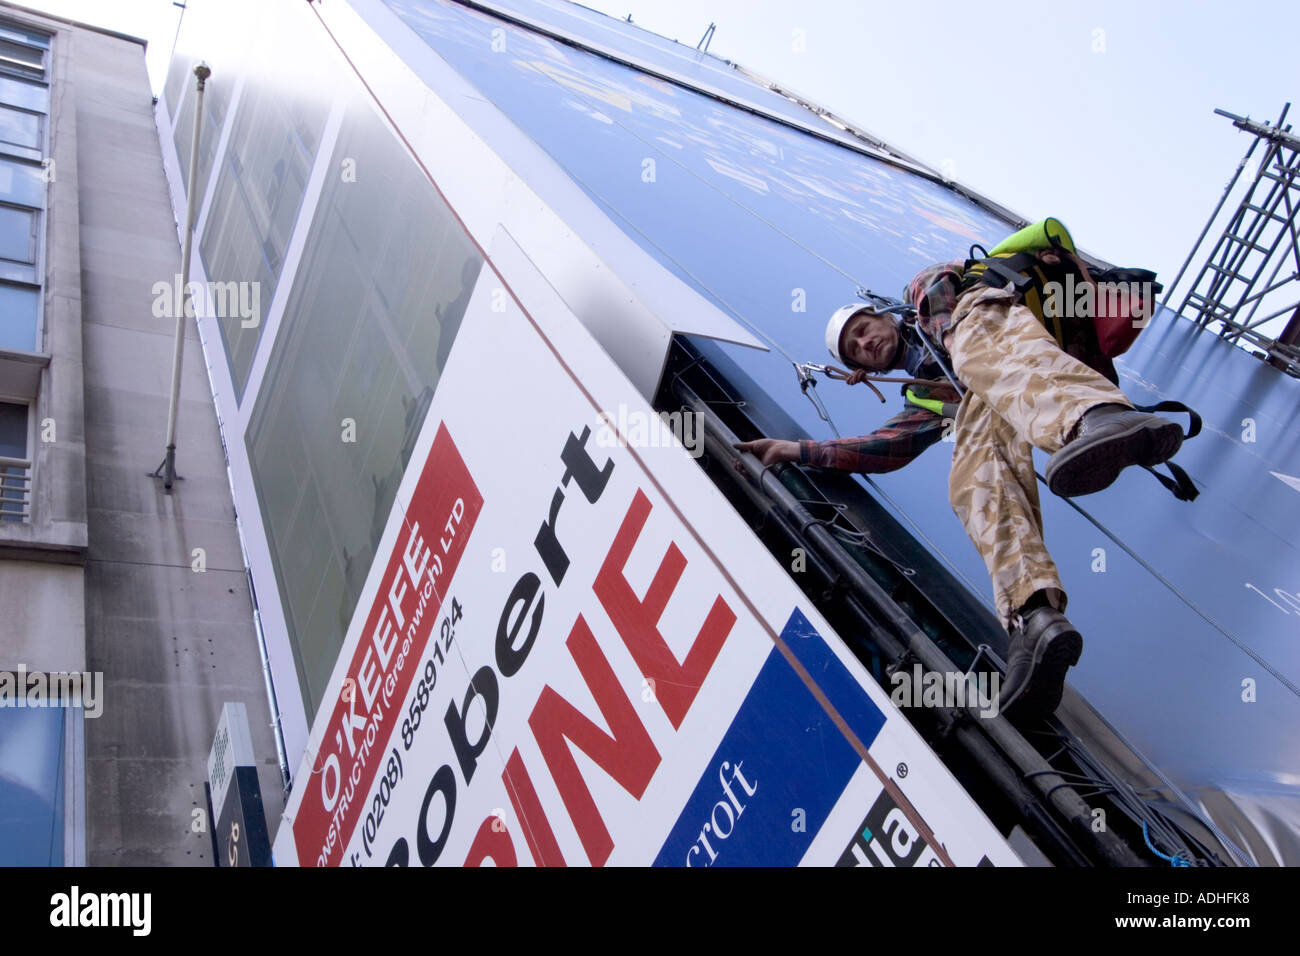 Dangerous occupations RAT roped access technician abseiler on advertising hoarding oxford street - Stock Image